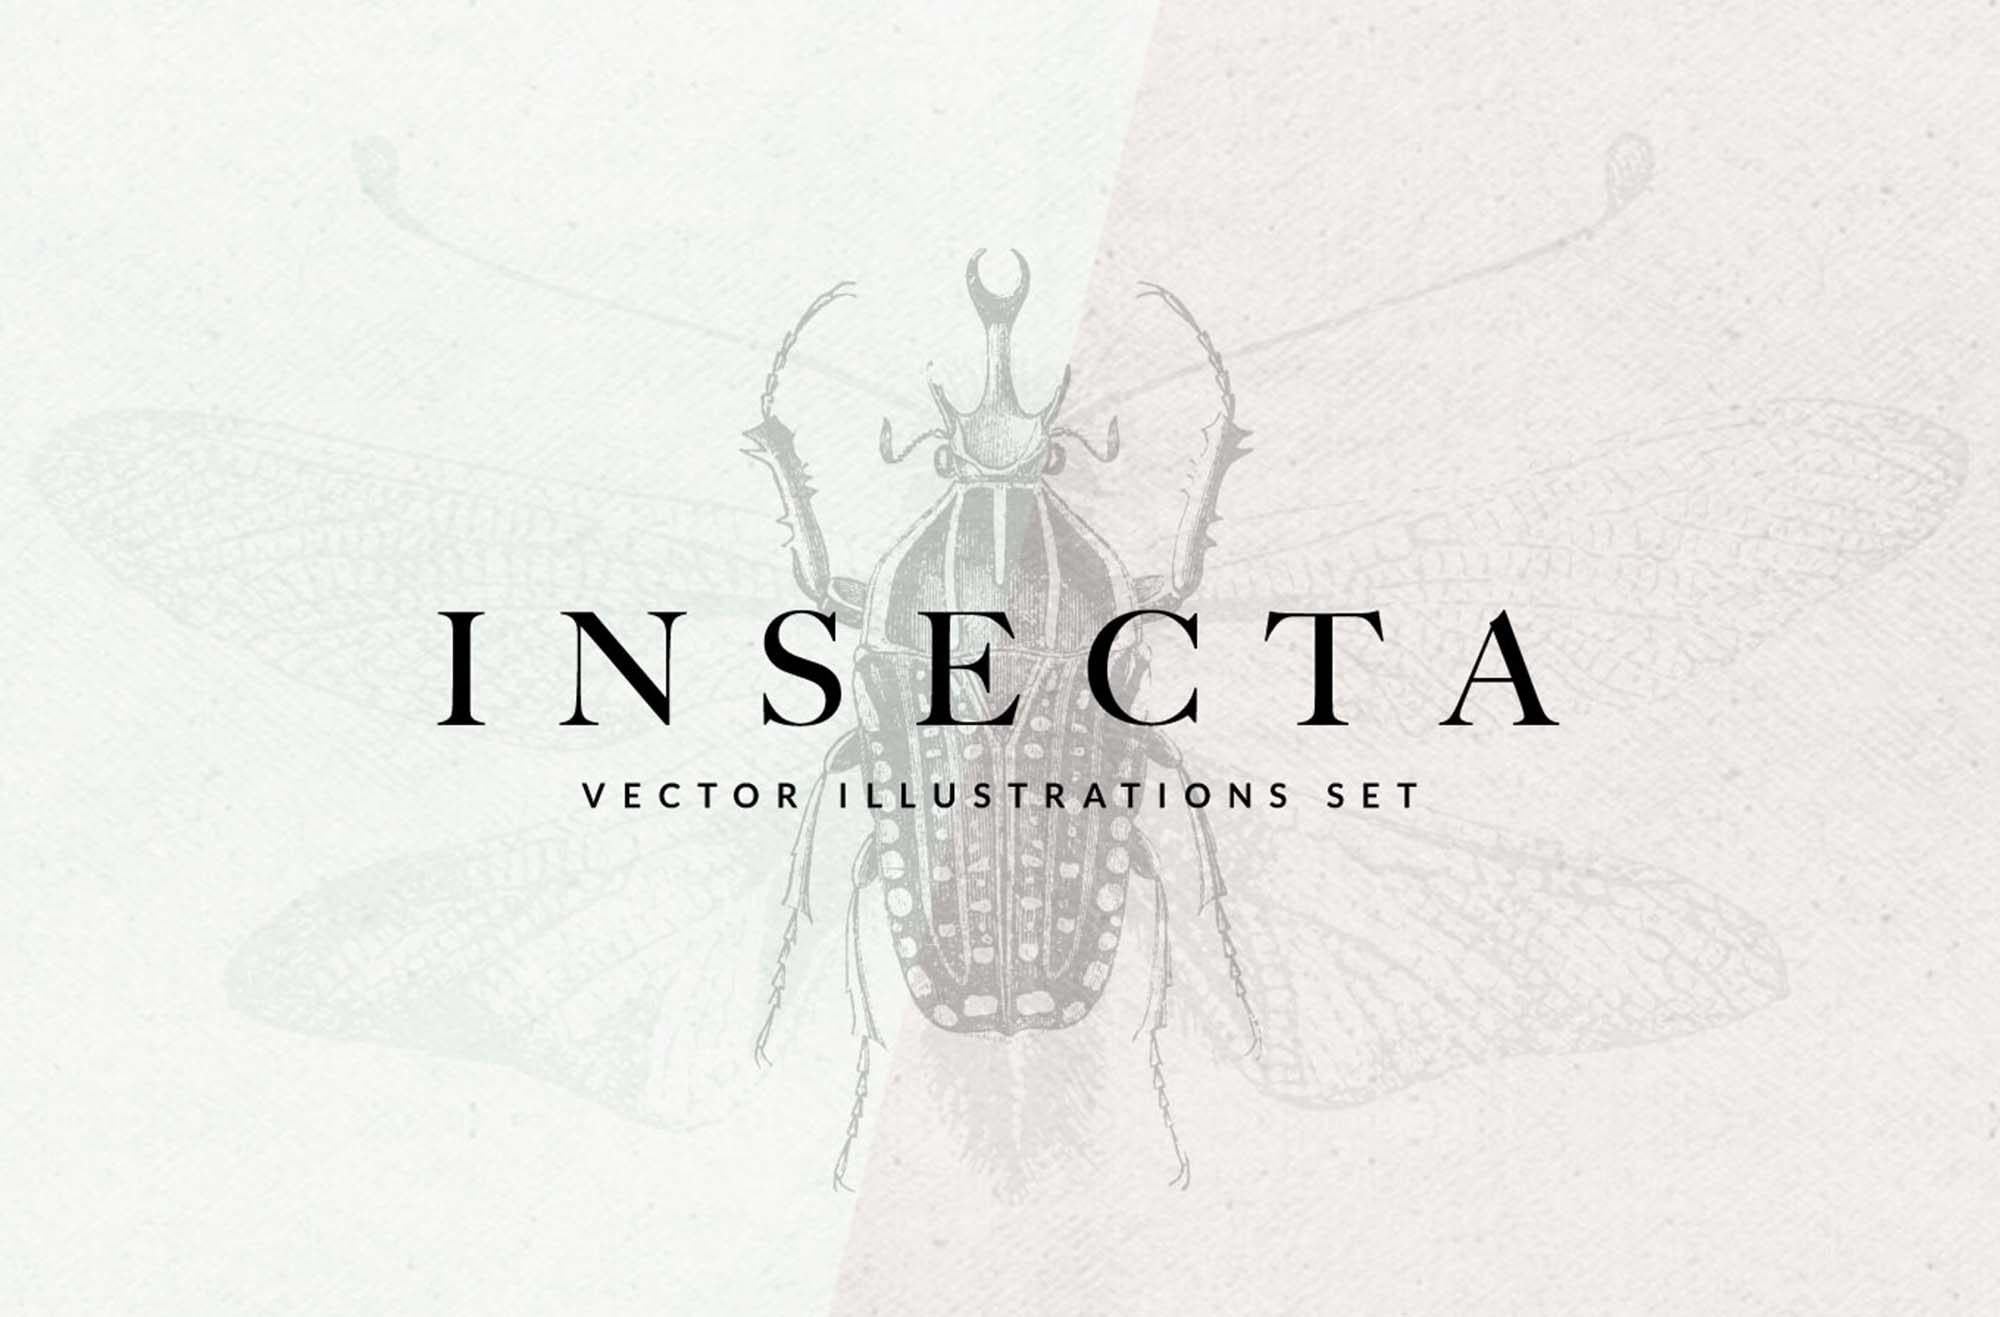 Insecta Illustrations